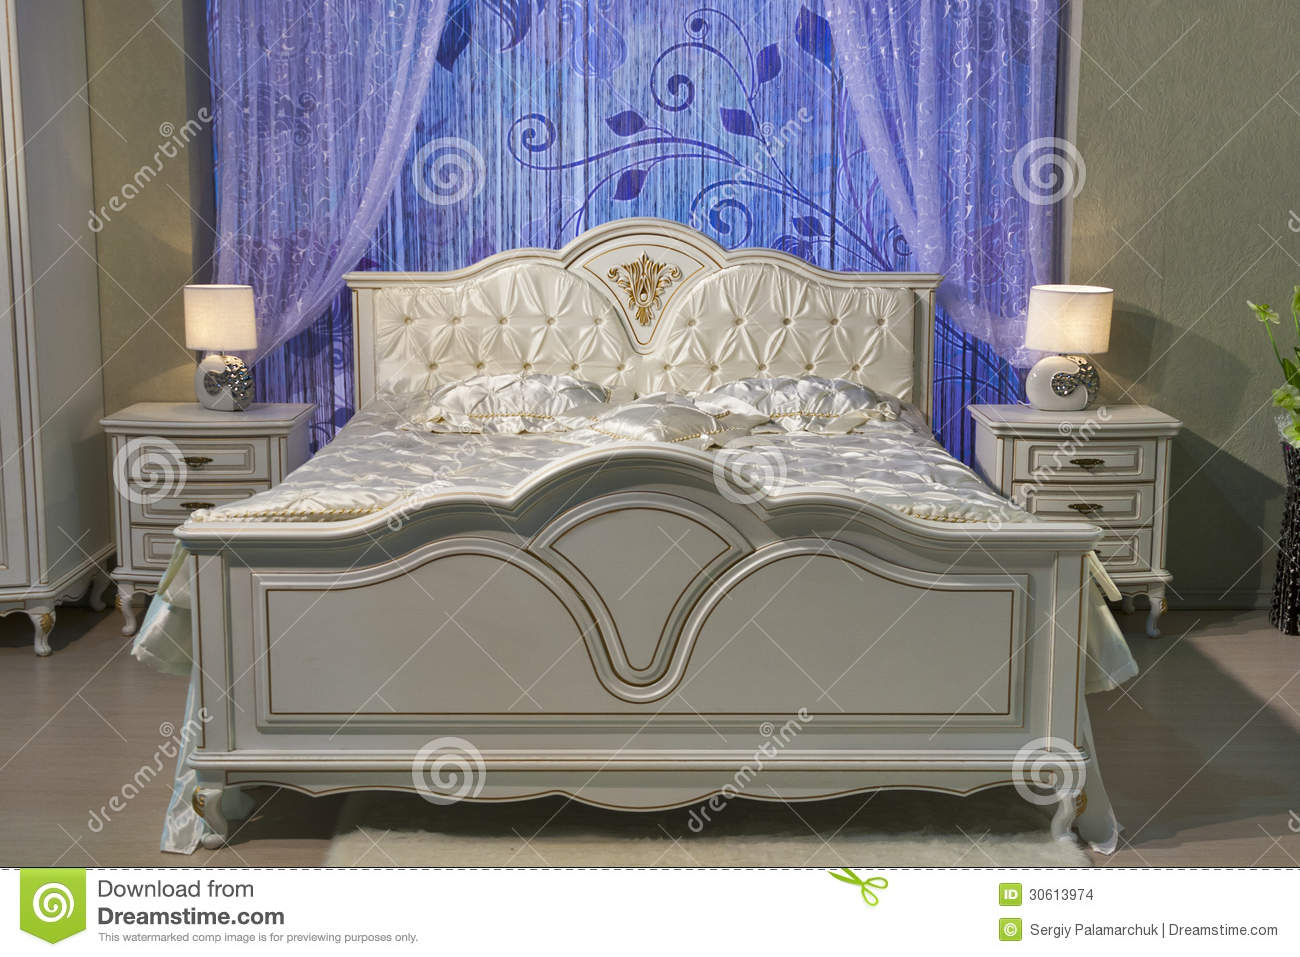 Chambre coucher baroque images stock image 30613974 - Chambre a coucher style baroque ...